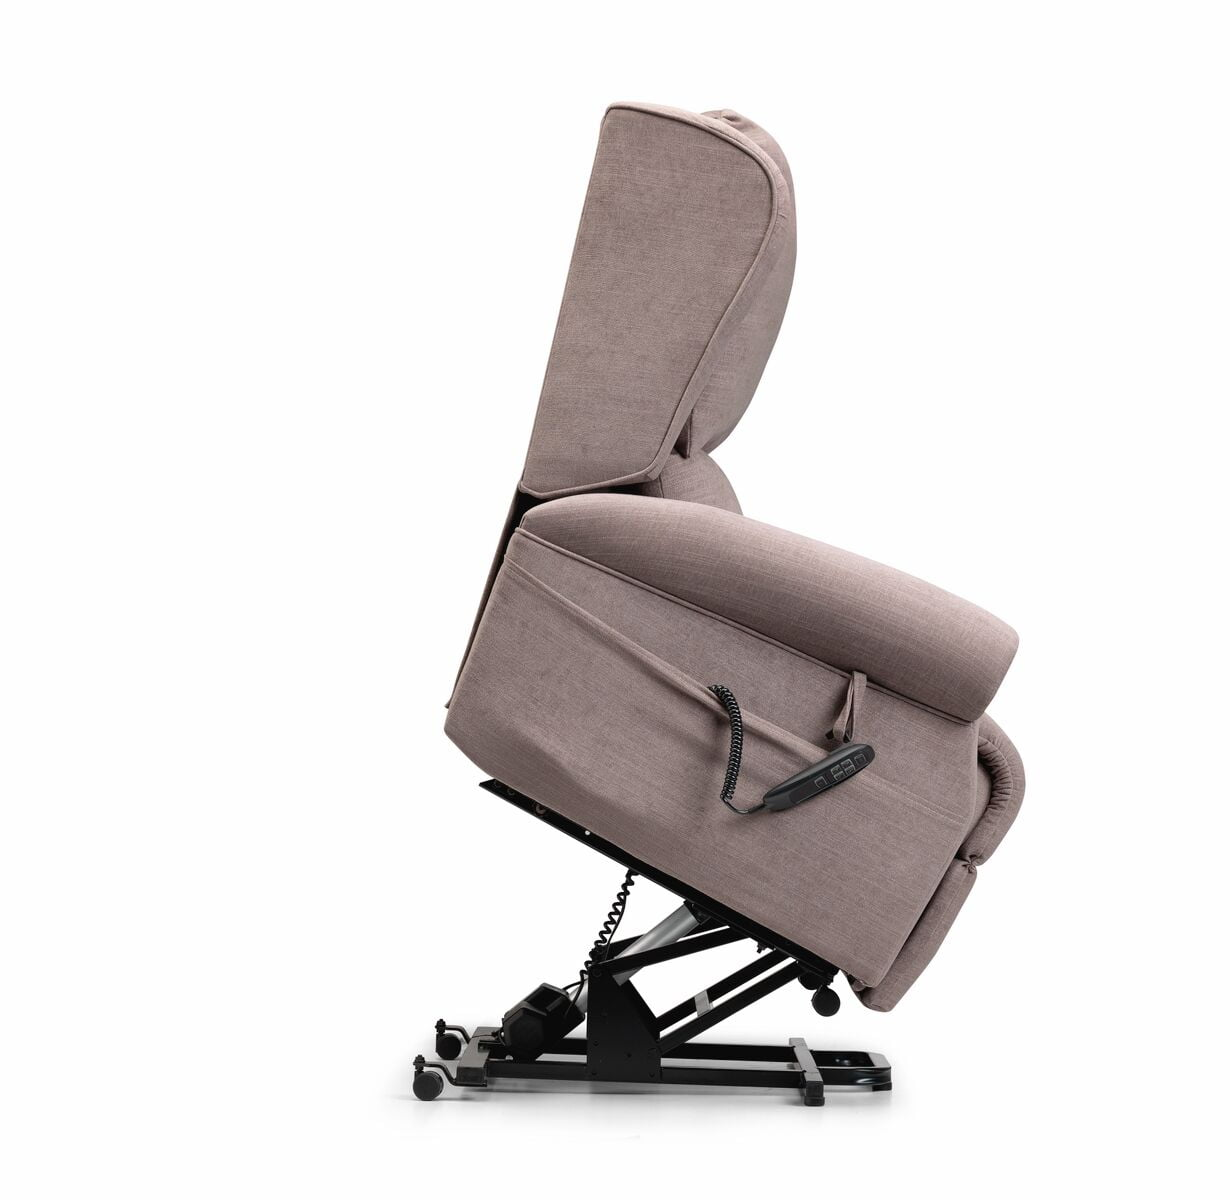 royal-premier-dual-rise-and-recline-chair